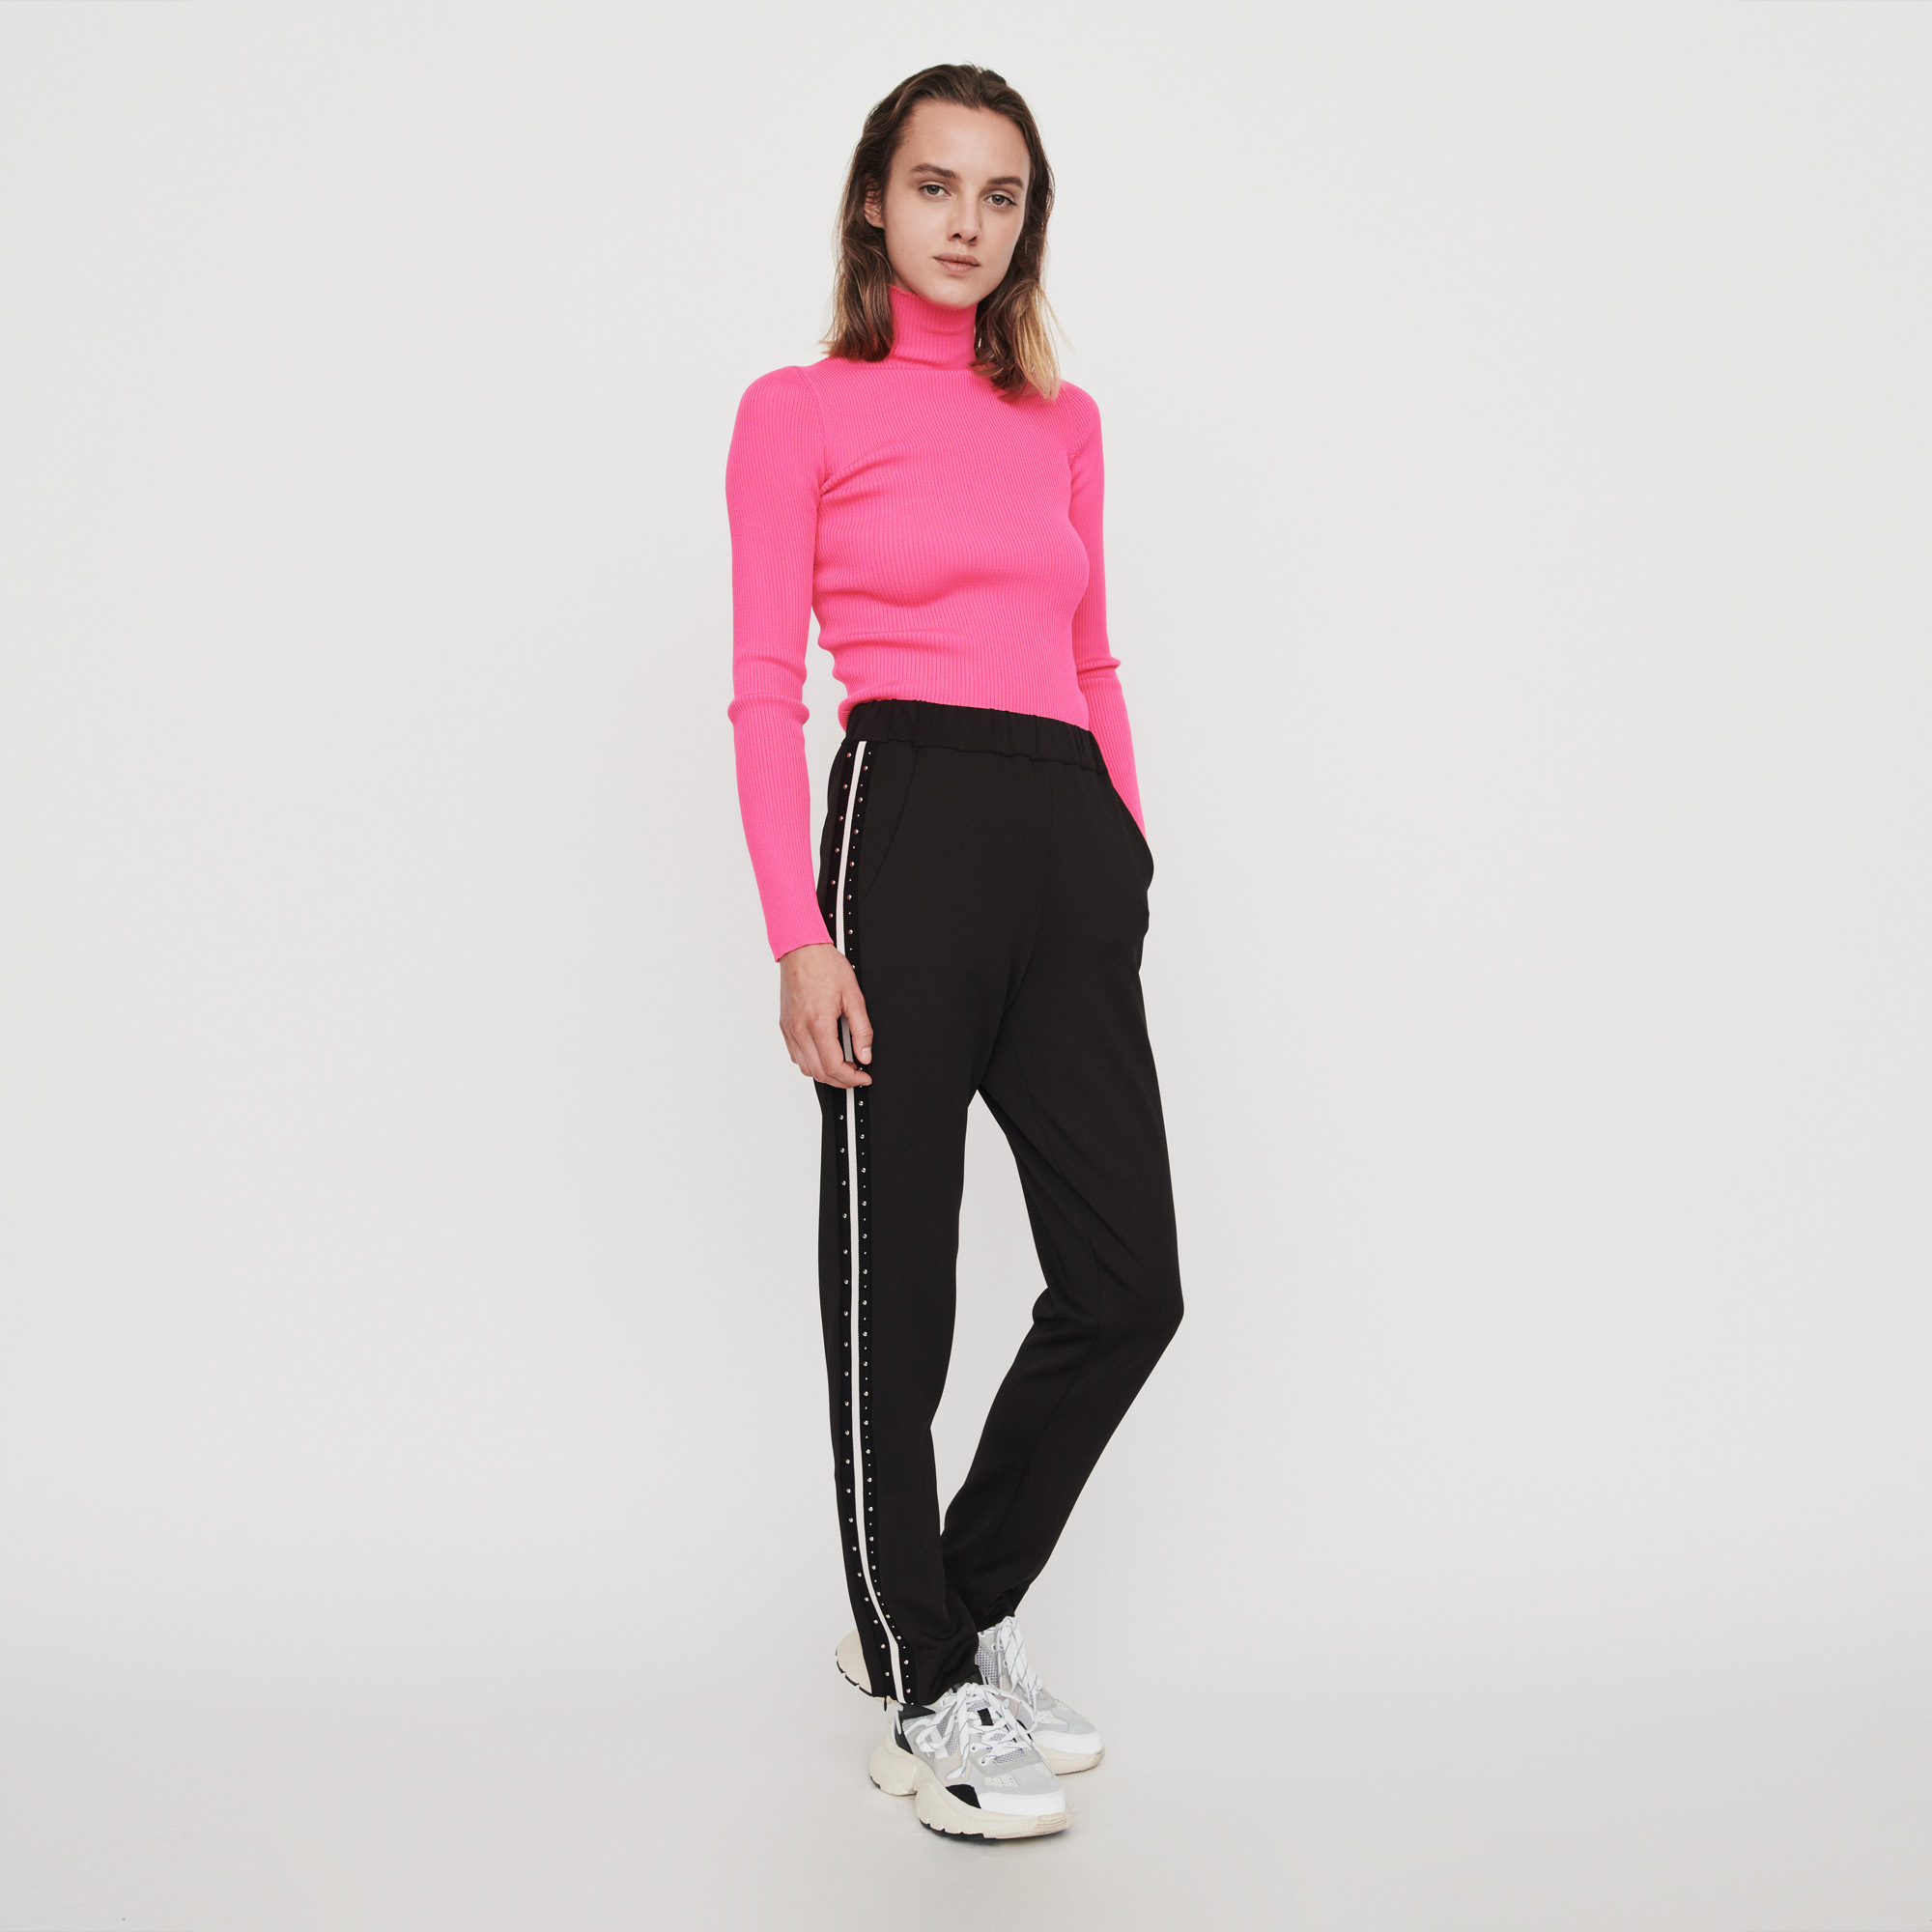 Studded Pants With Contrasting Stripes - Black